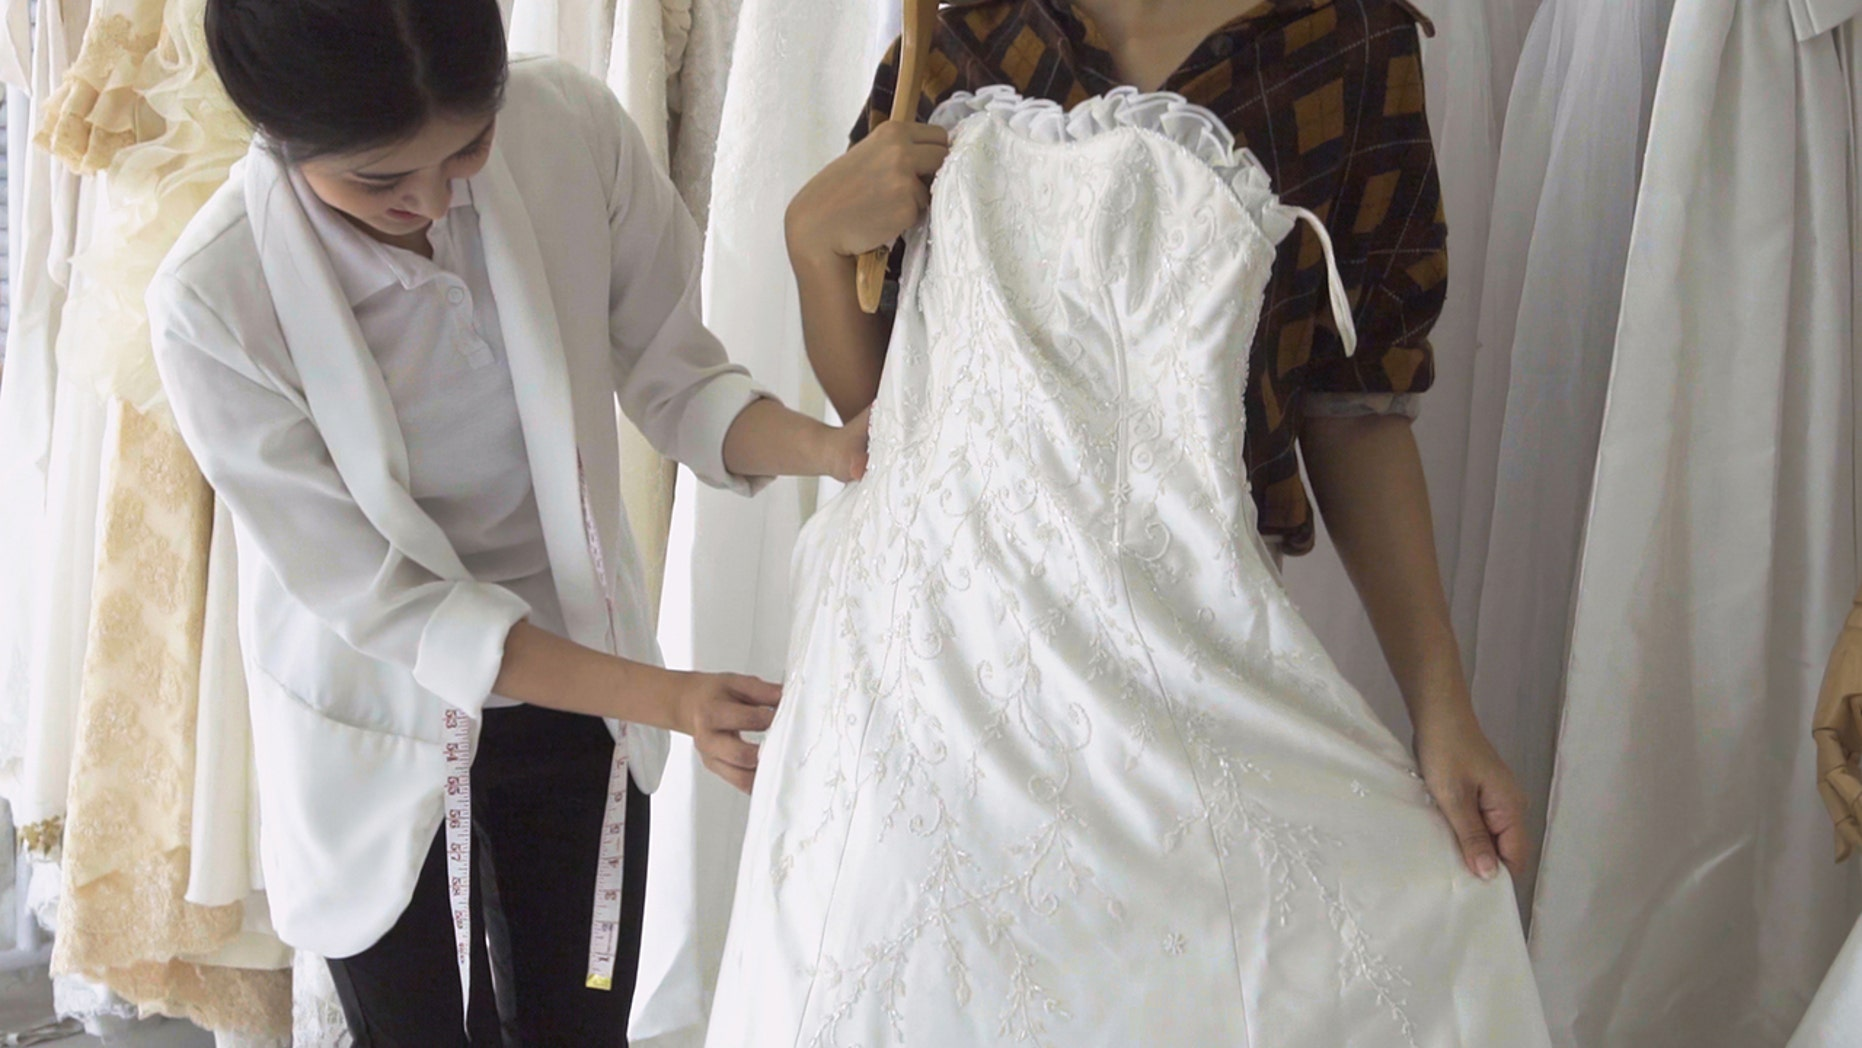 An anonymous bride is claiming her mother and sister in law took turns trying on her dream dress without her permission.